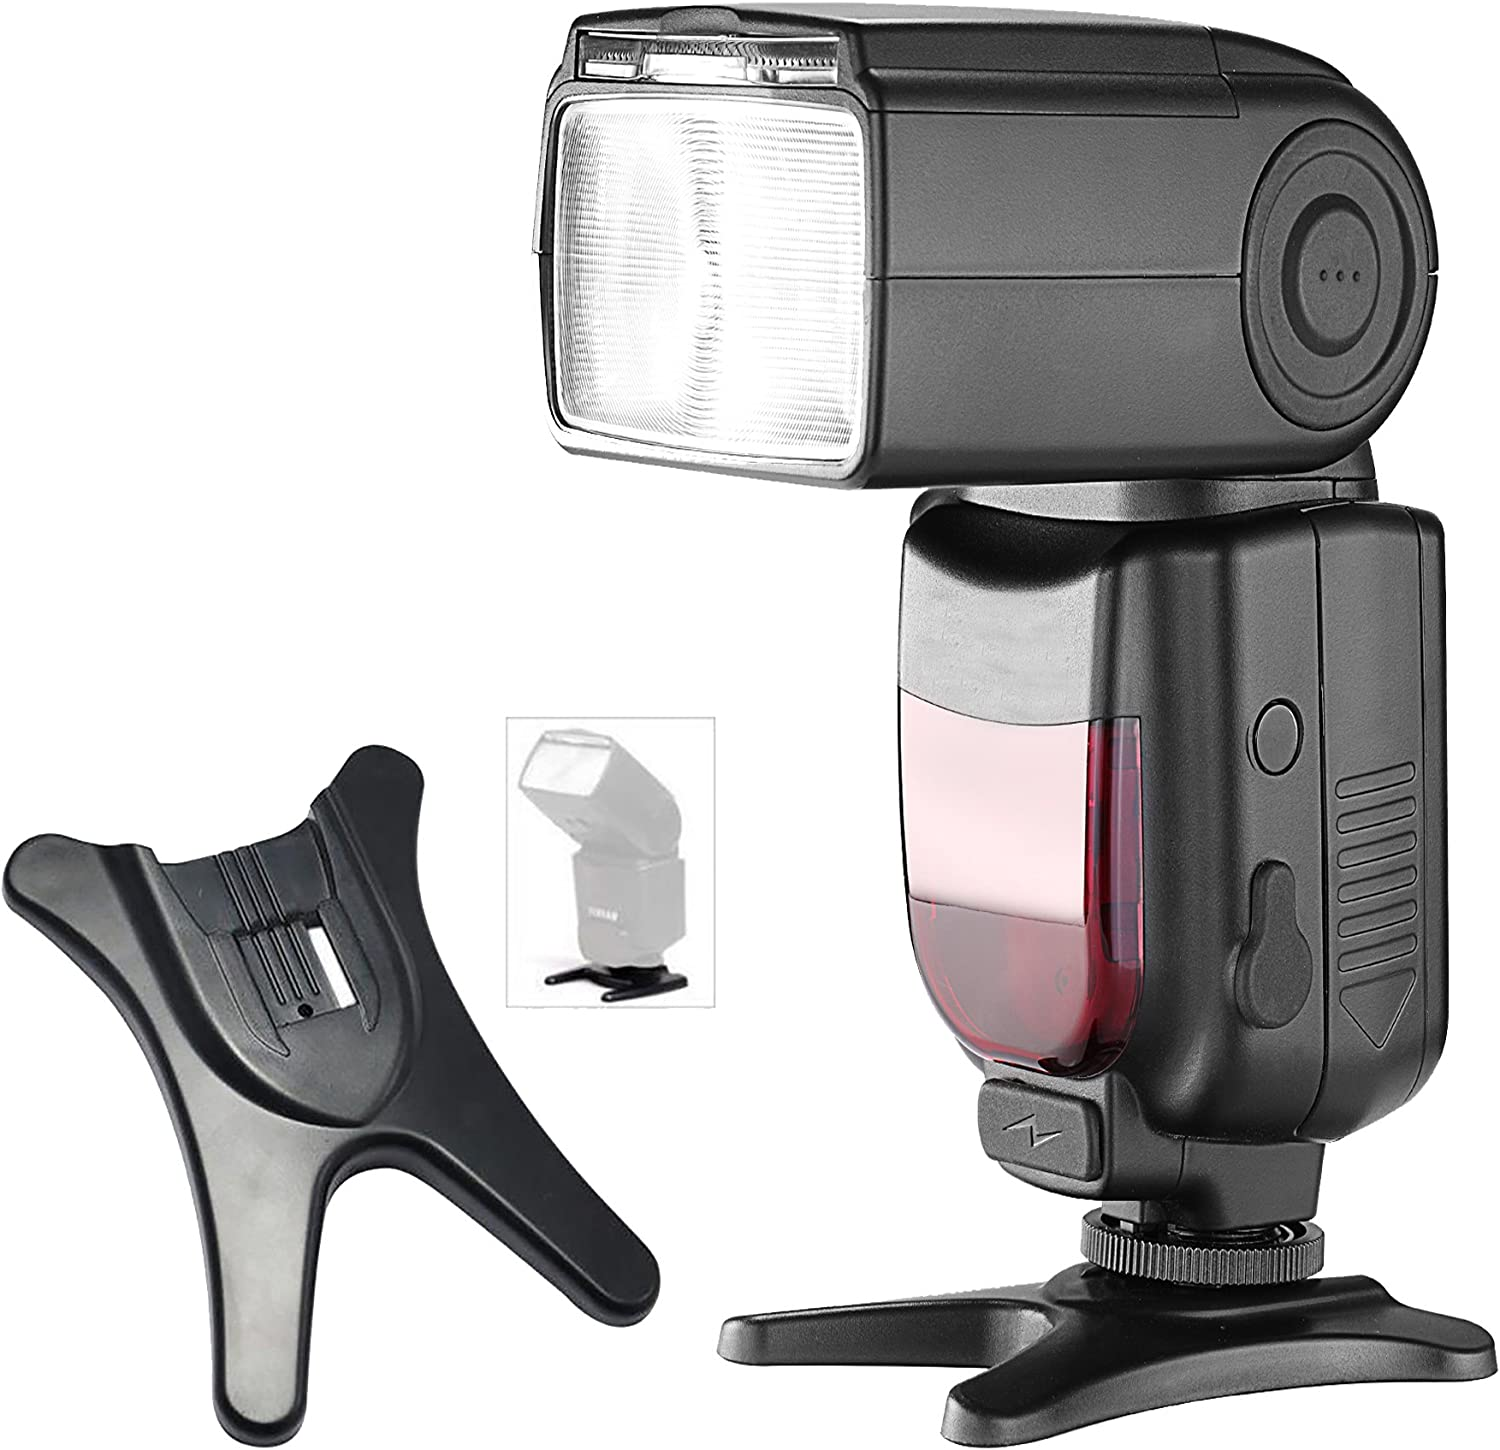 Neewer 2 Packs Hot Shoe Flash Stand Compatible with Nikon SB-910 SB-900 SB-800 Canon 600EX 580EXII 580EX 430EX TT560 NW680 TT850 TT860 VK750 NW670 VK750II Flashes